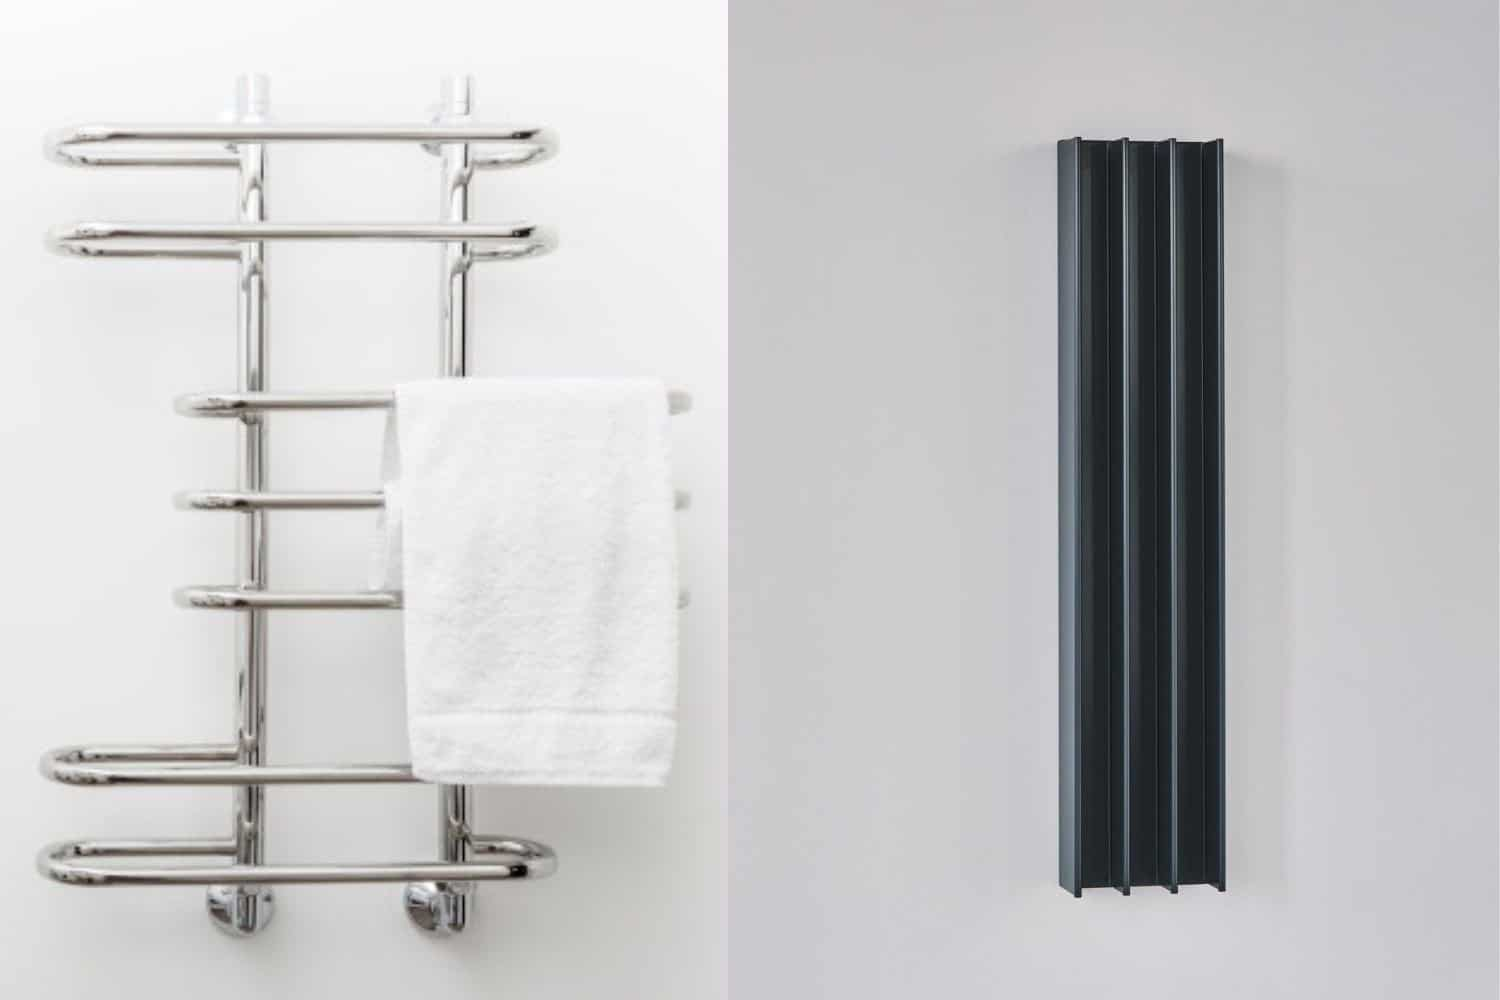 A stainless steel towel rail next to a vertical aluminum warmer